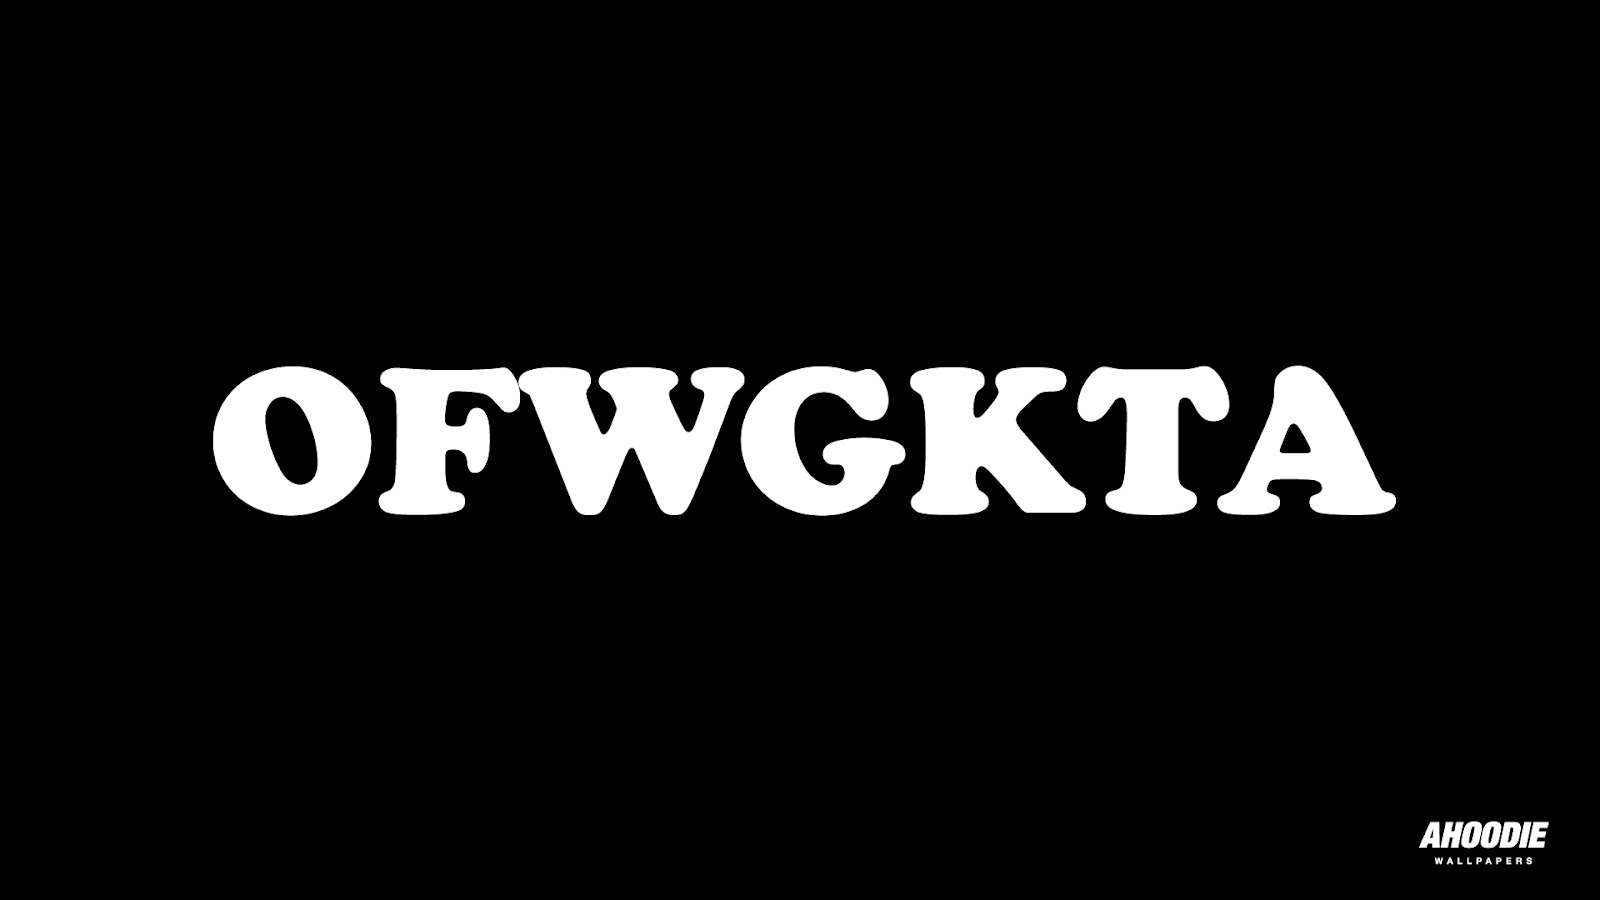 Ofwgkta Wallpaper Download